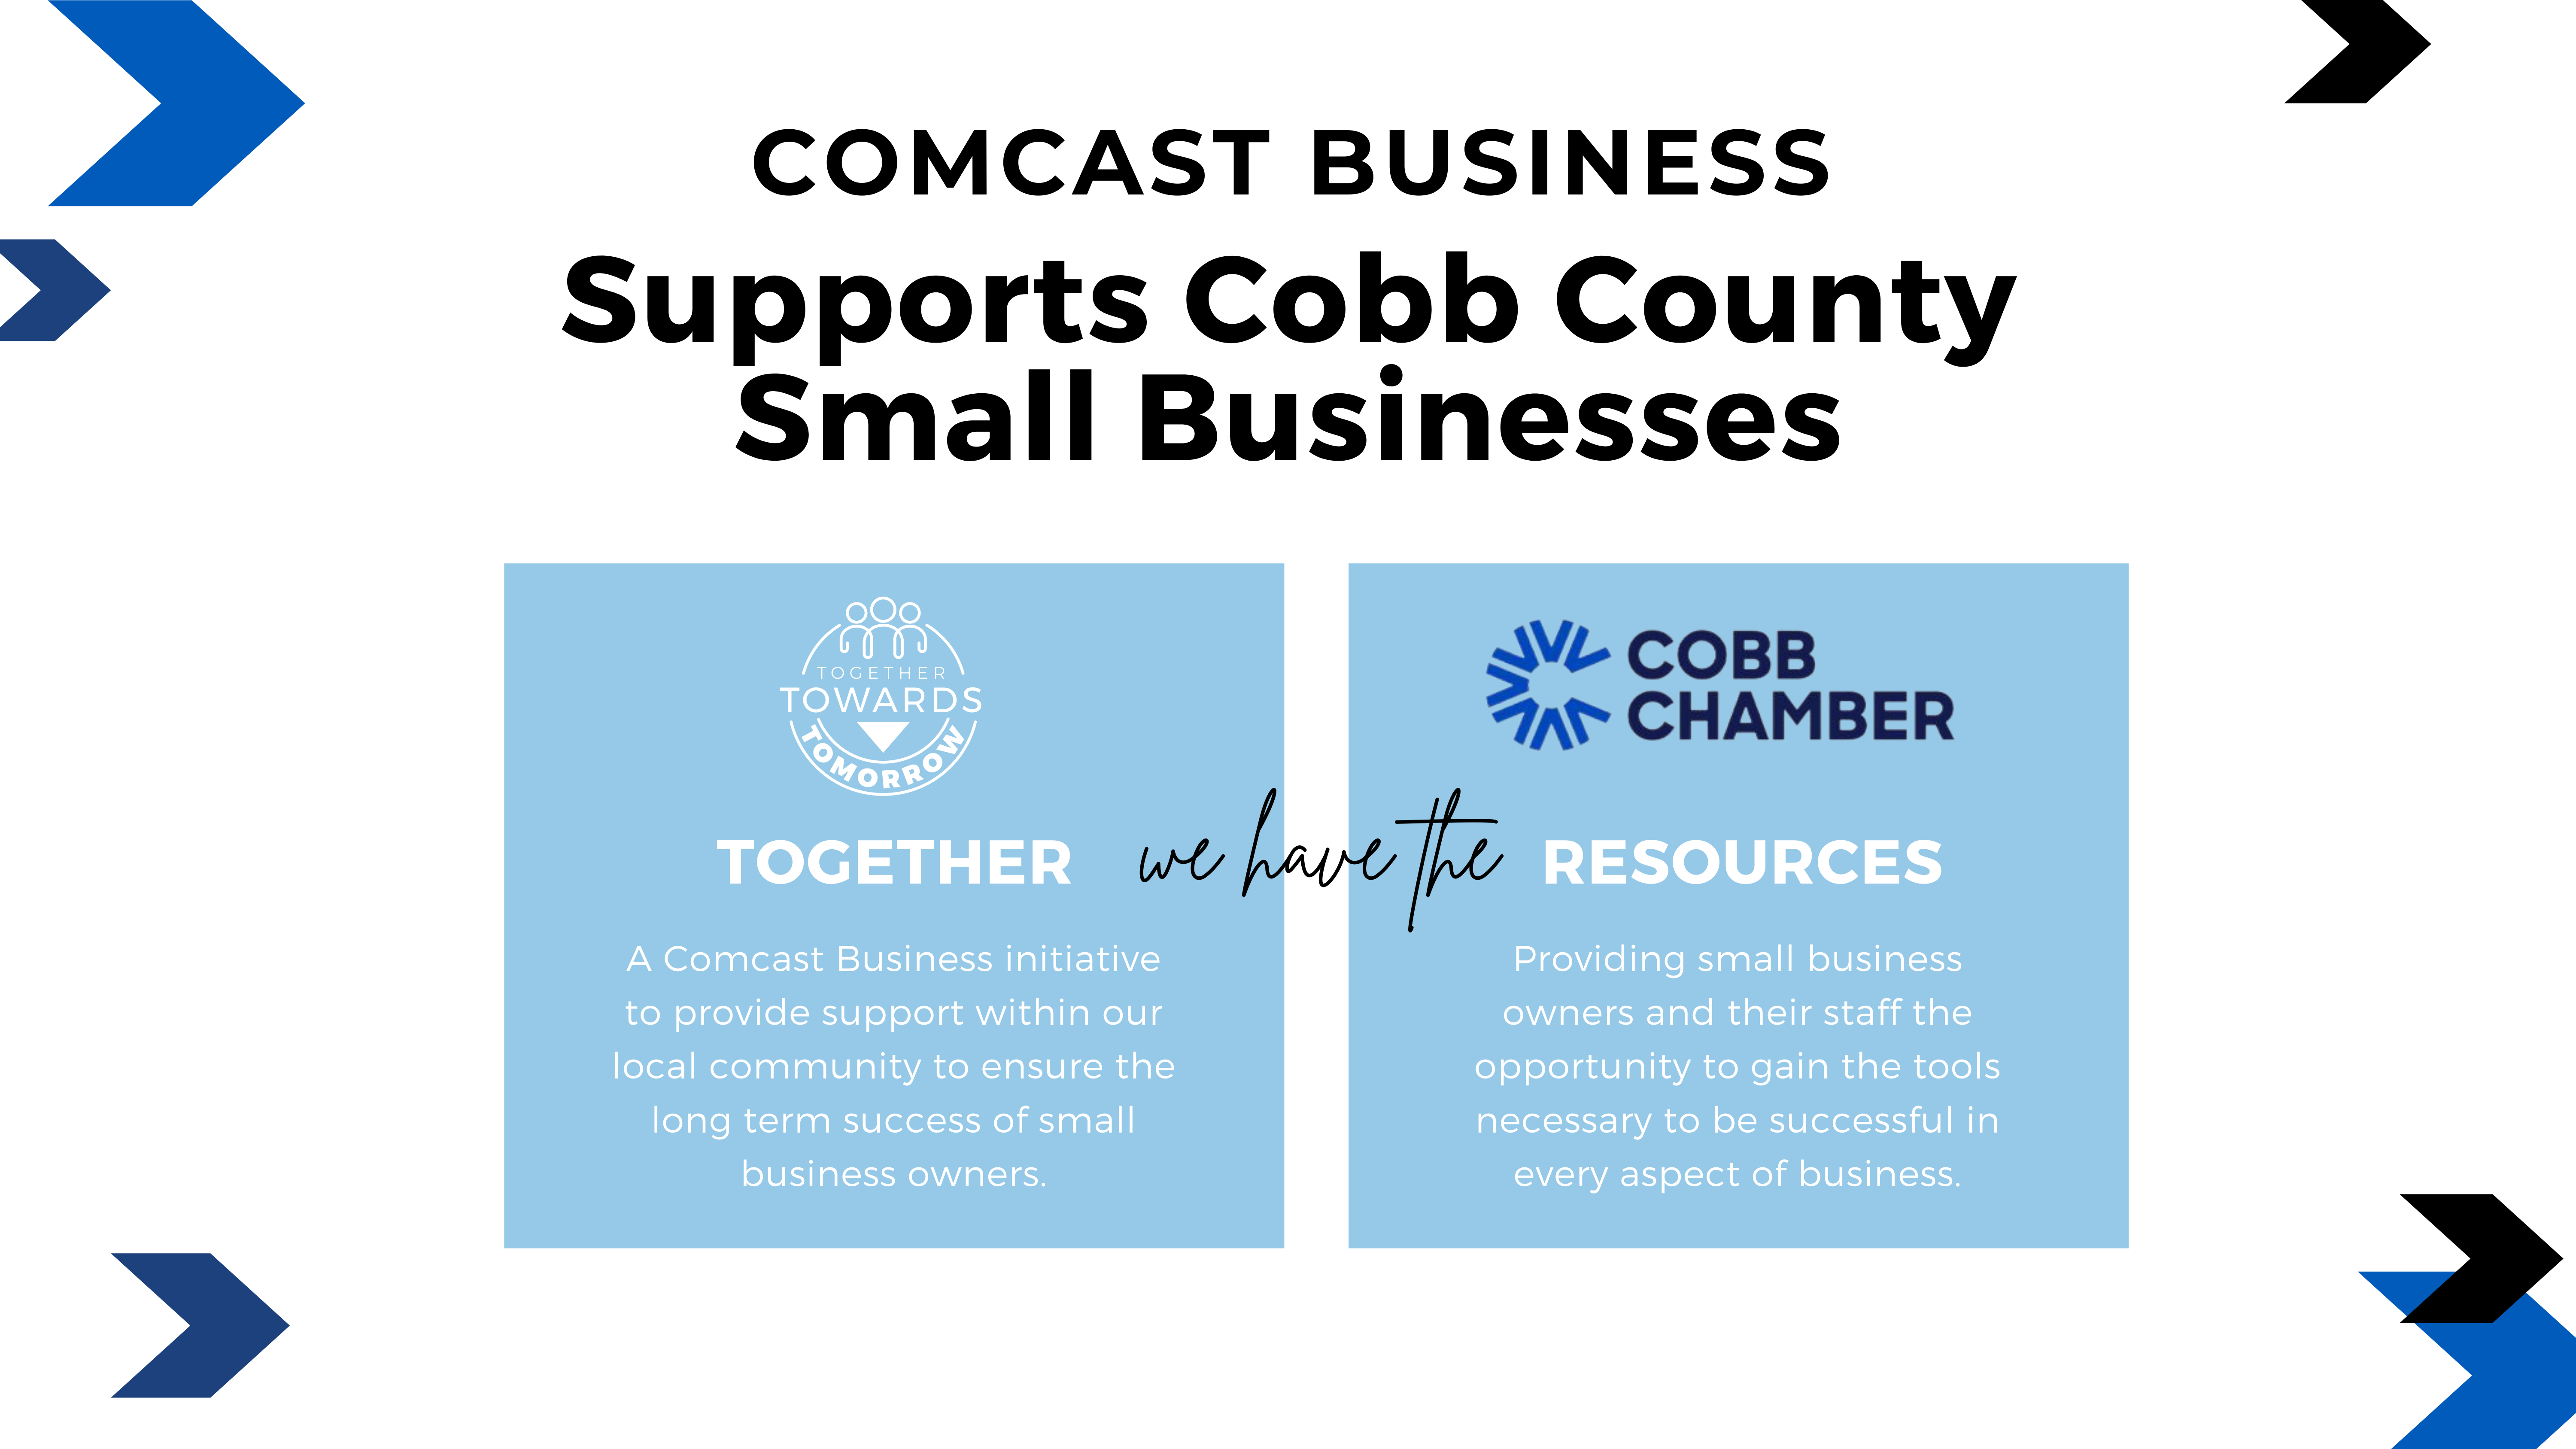 Comcast Business and Cobb Chamber of Commerce Partner to Support Small Businesses Impacted by Pandemic